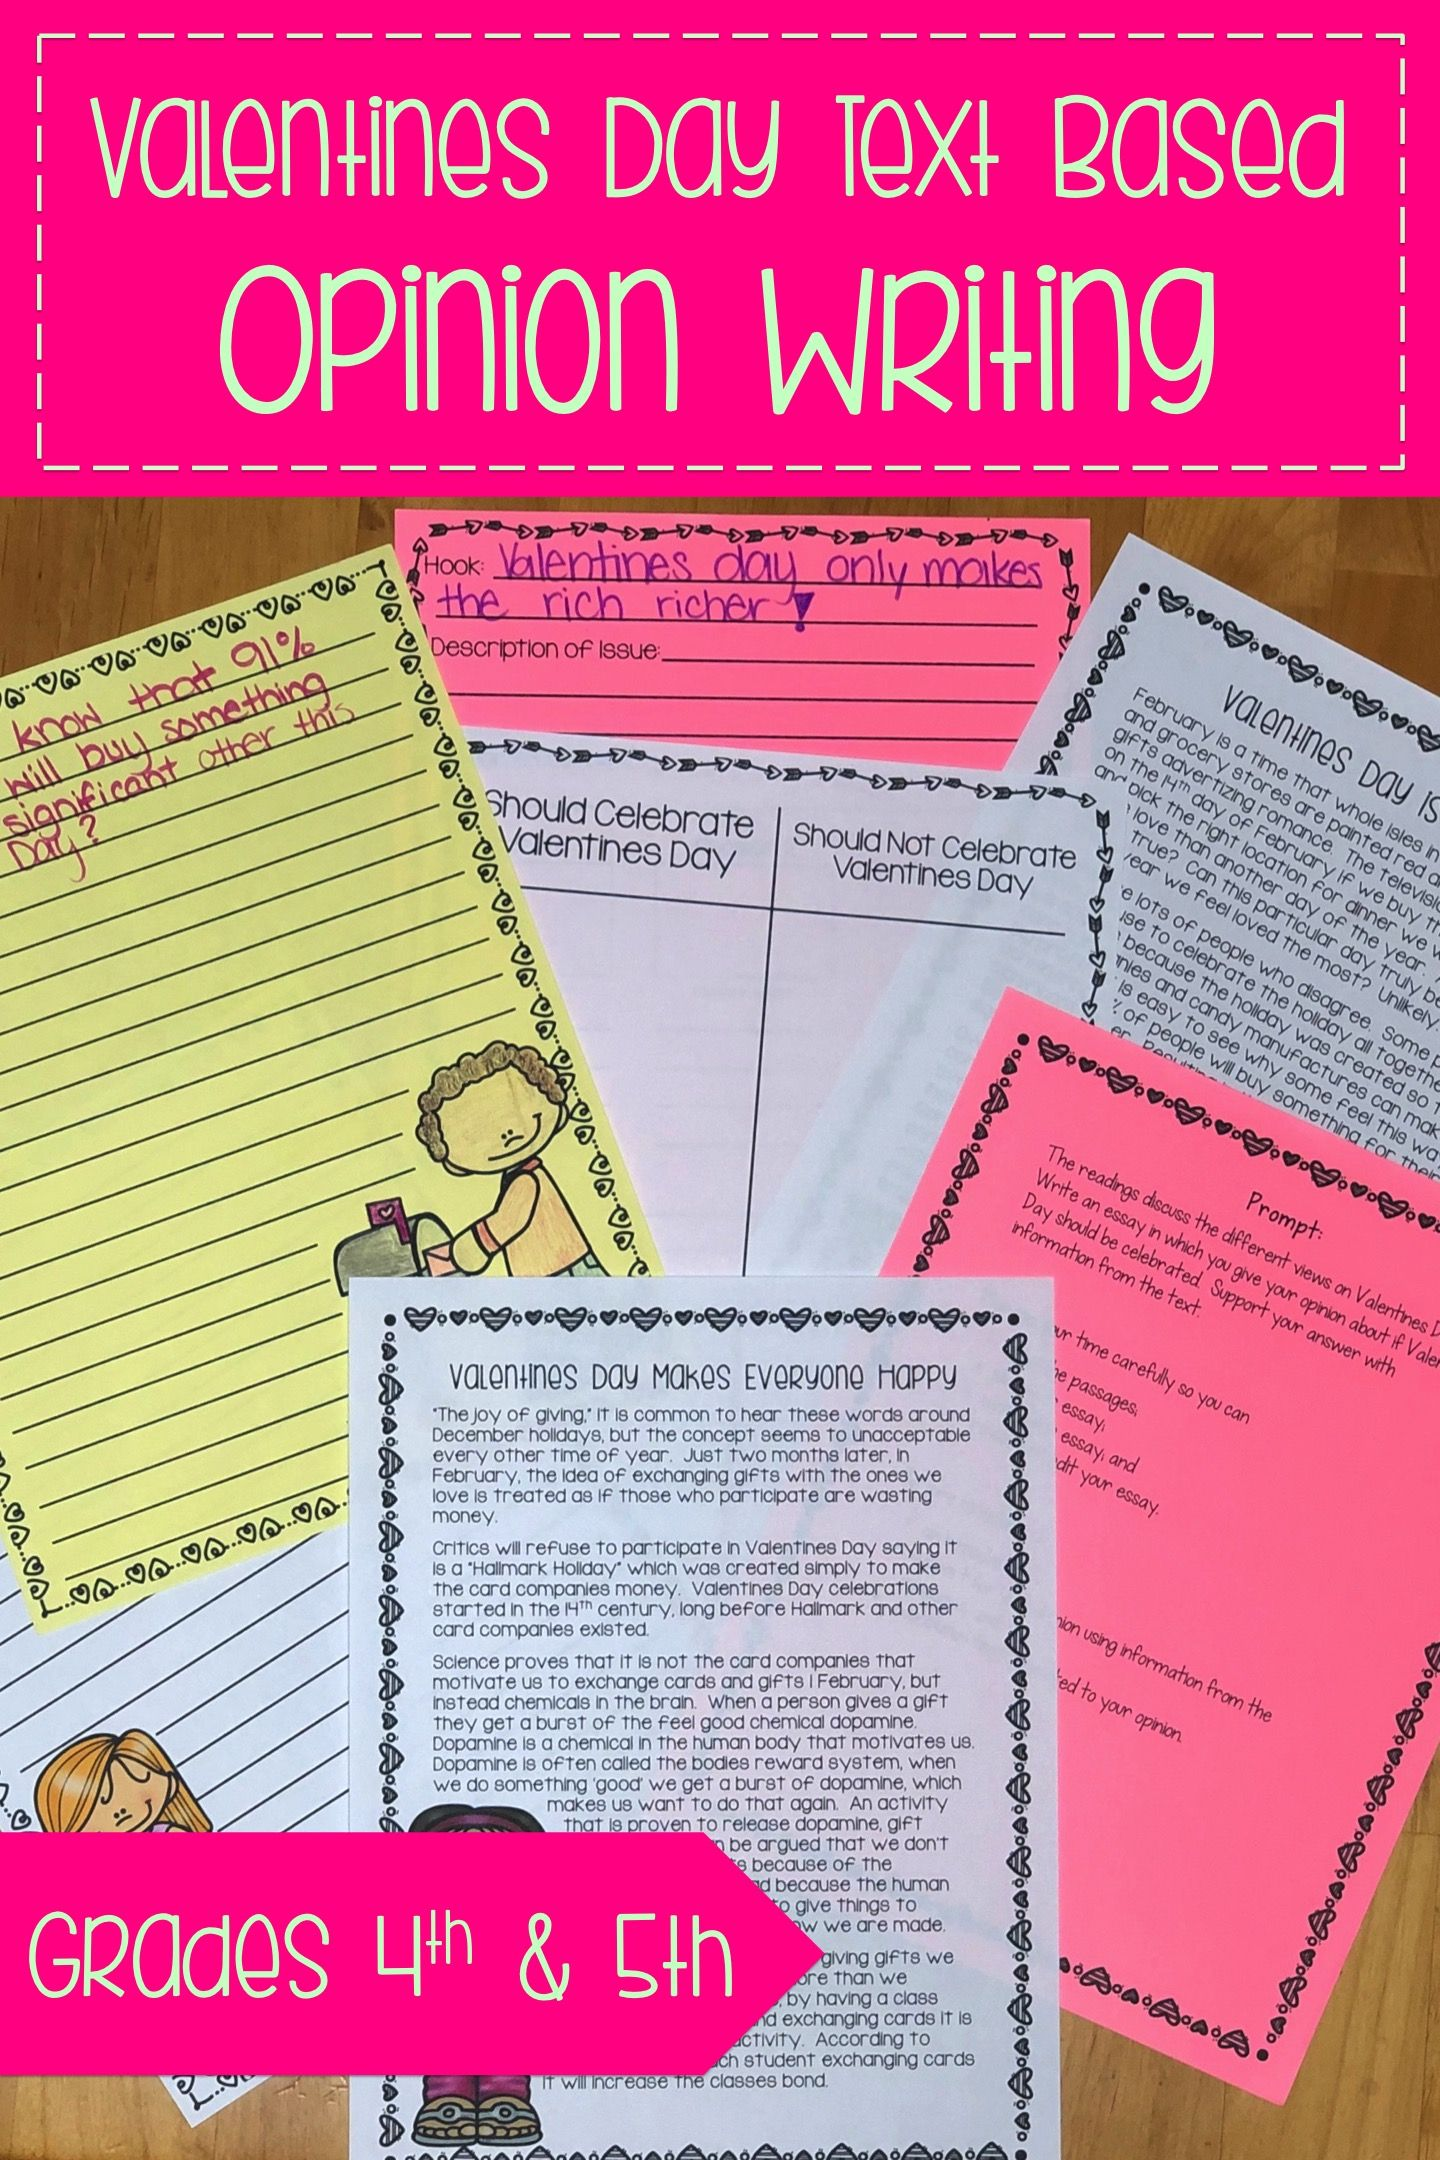 Valentines Day Text Based Opinion Writing Prompt